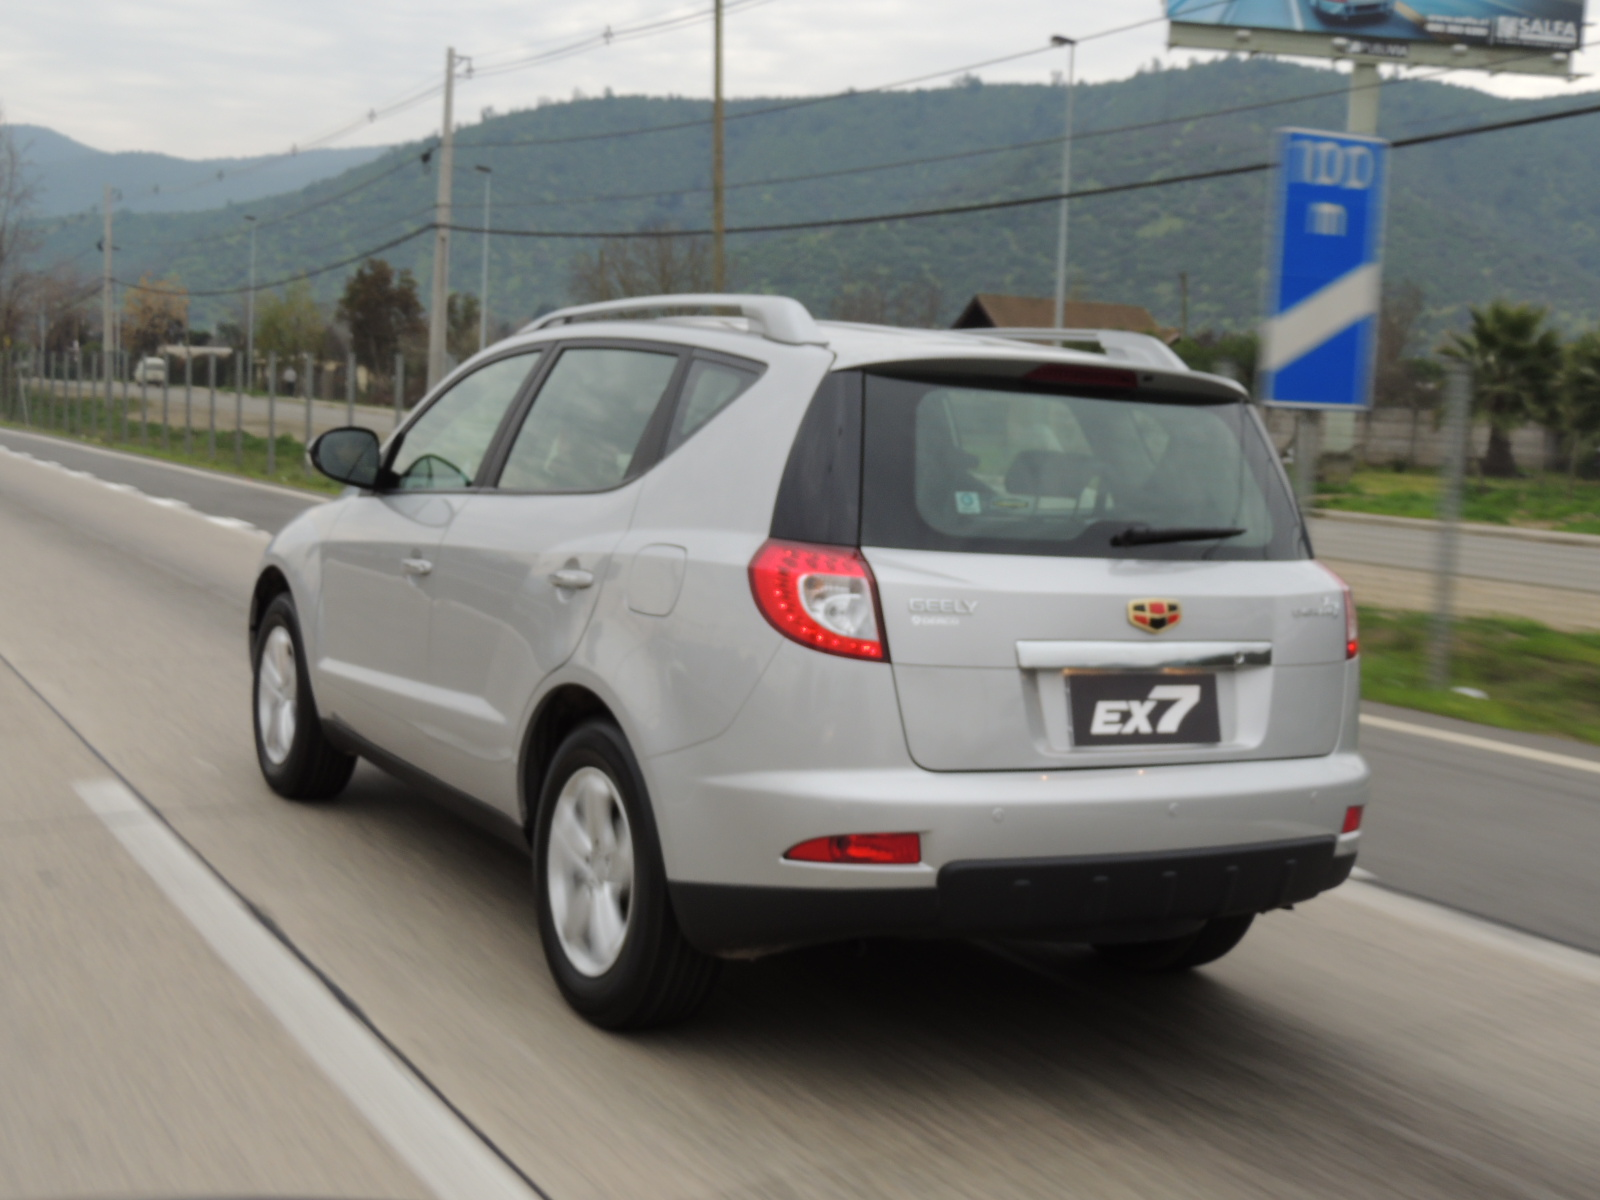 geely ex 7 images #8